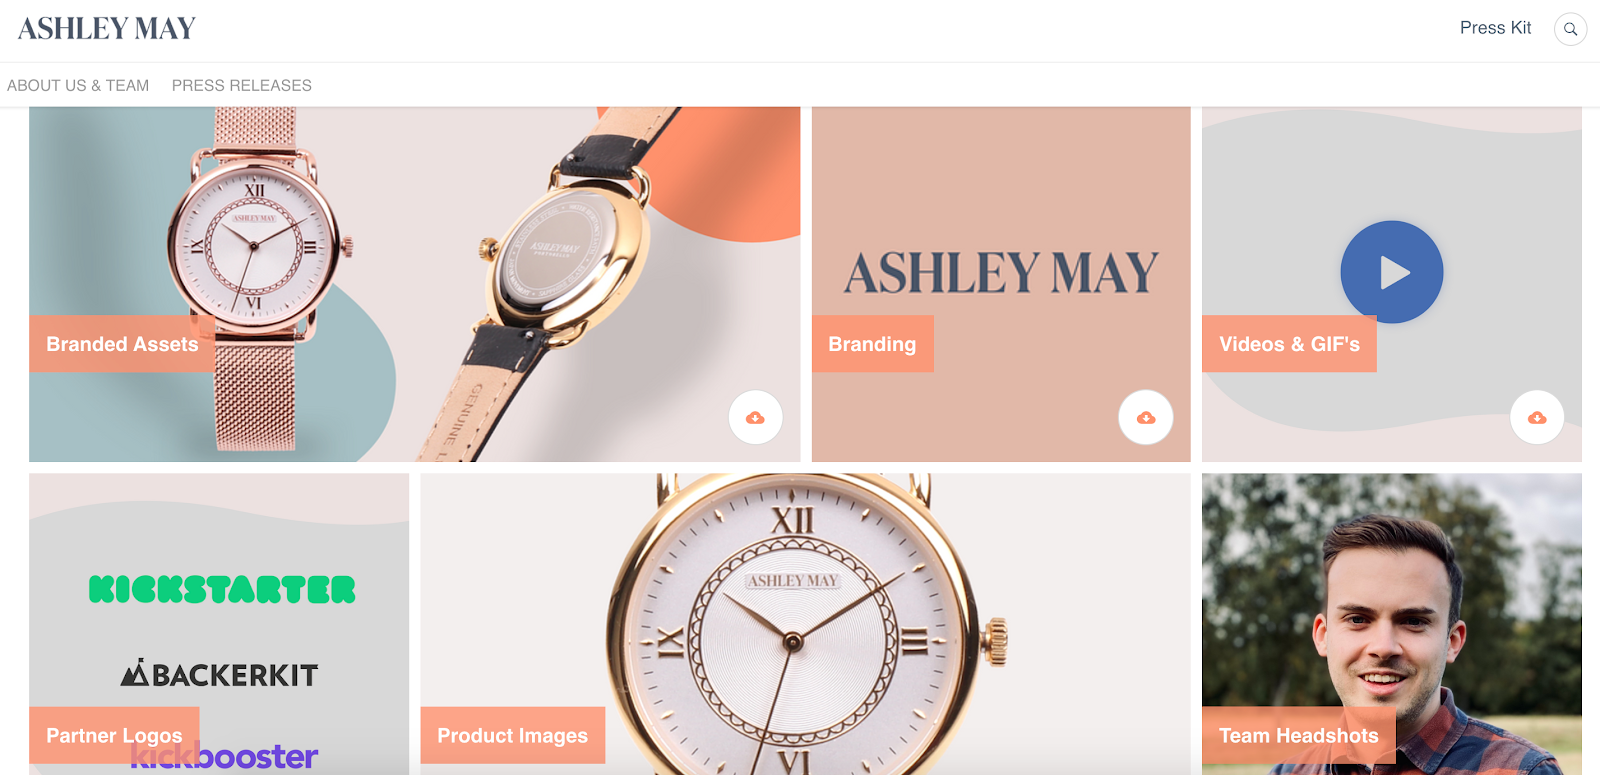 An online press kit created in Prowly by Ashley May